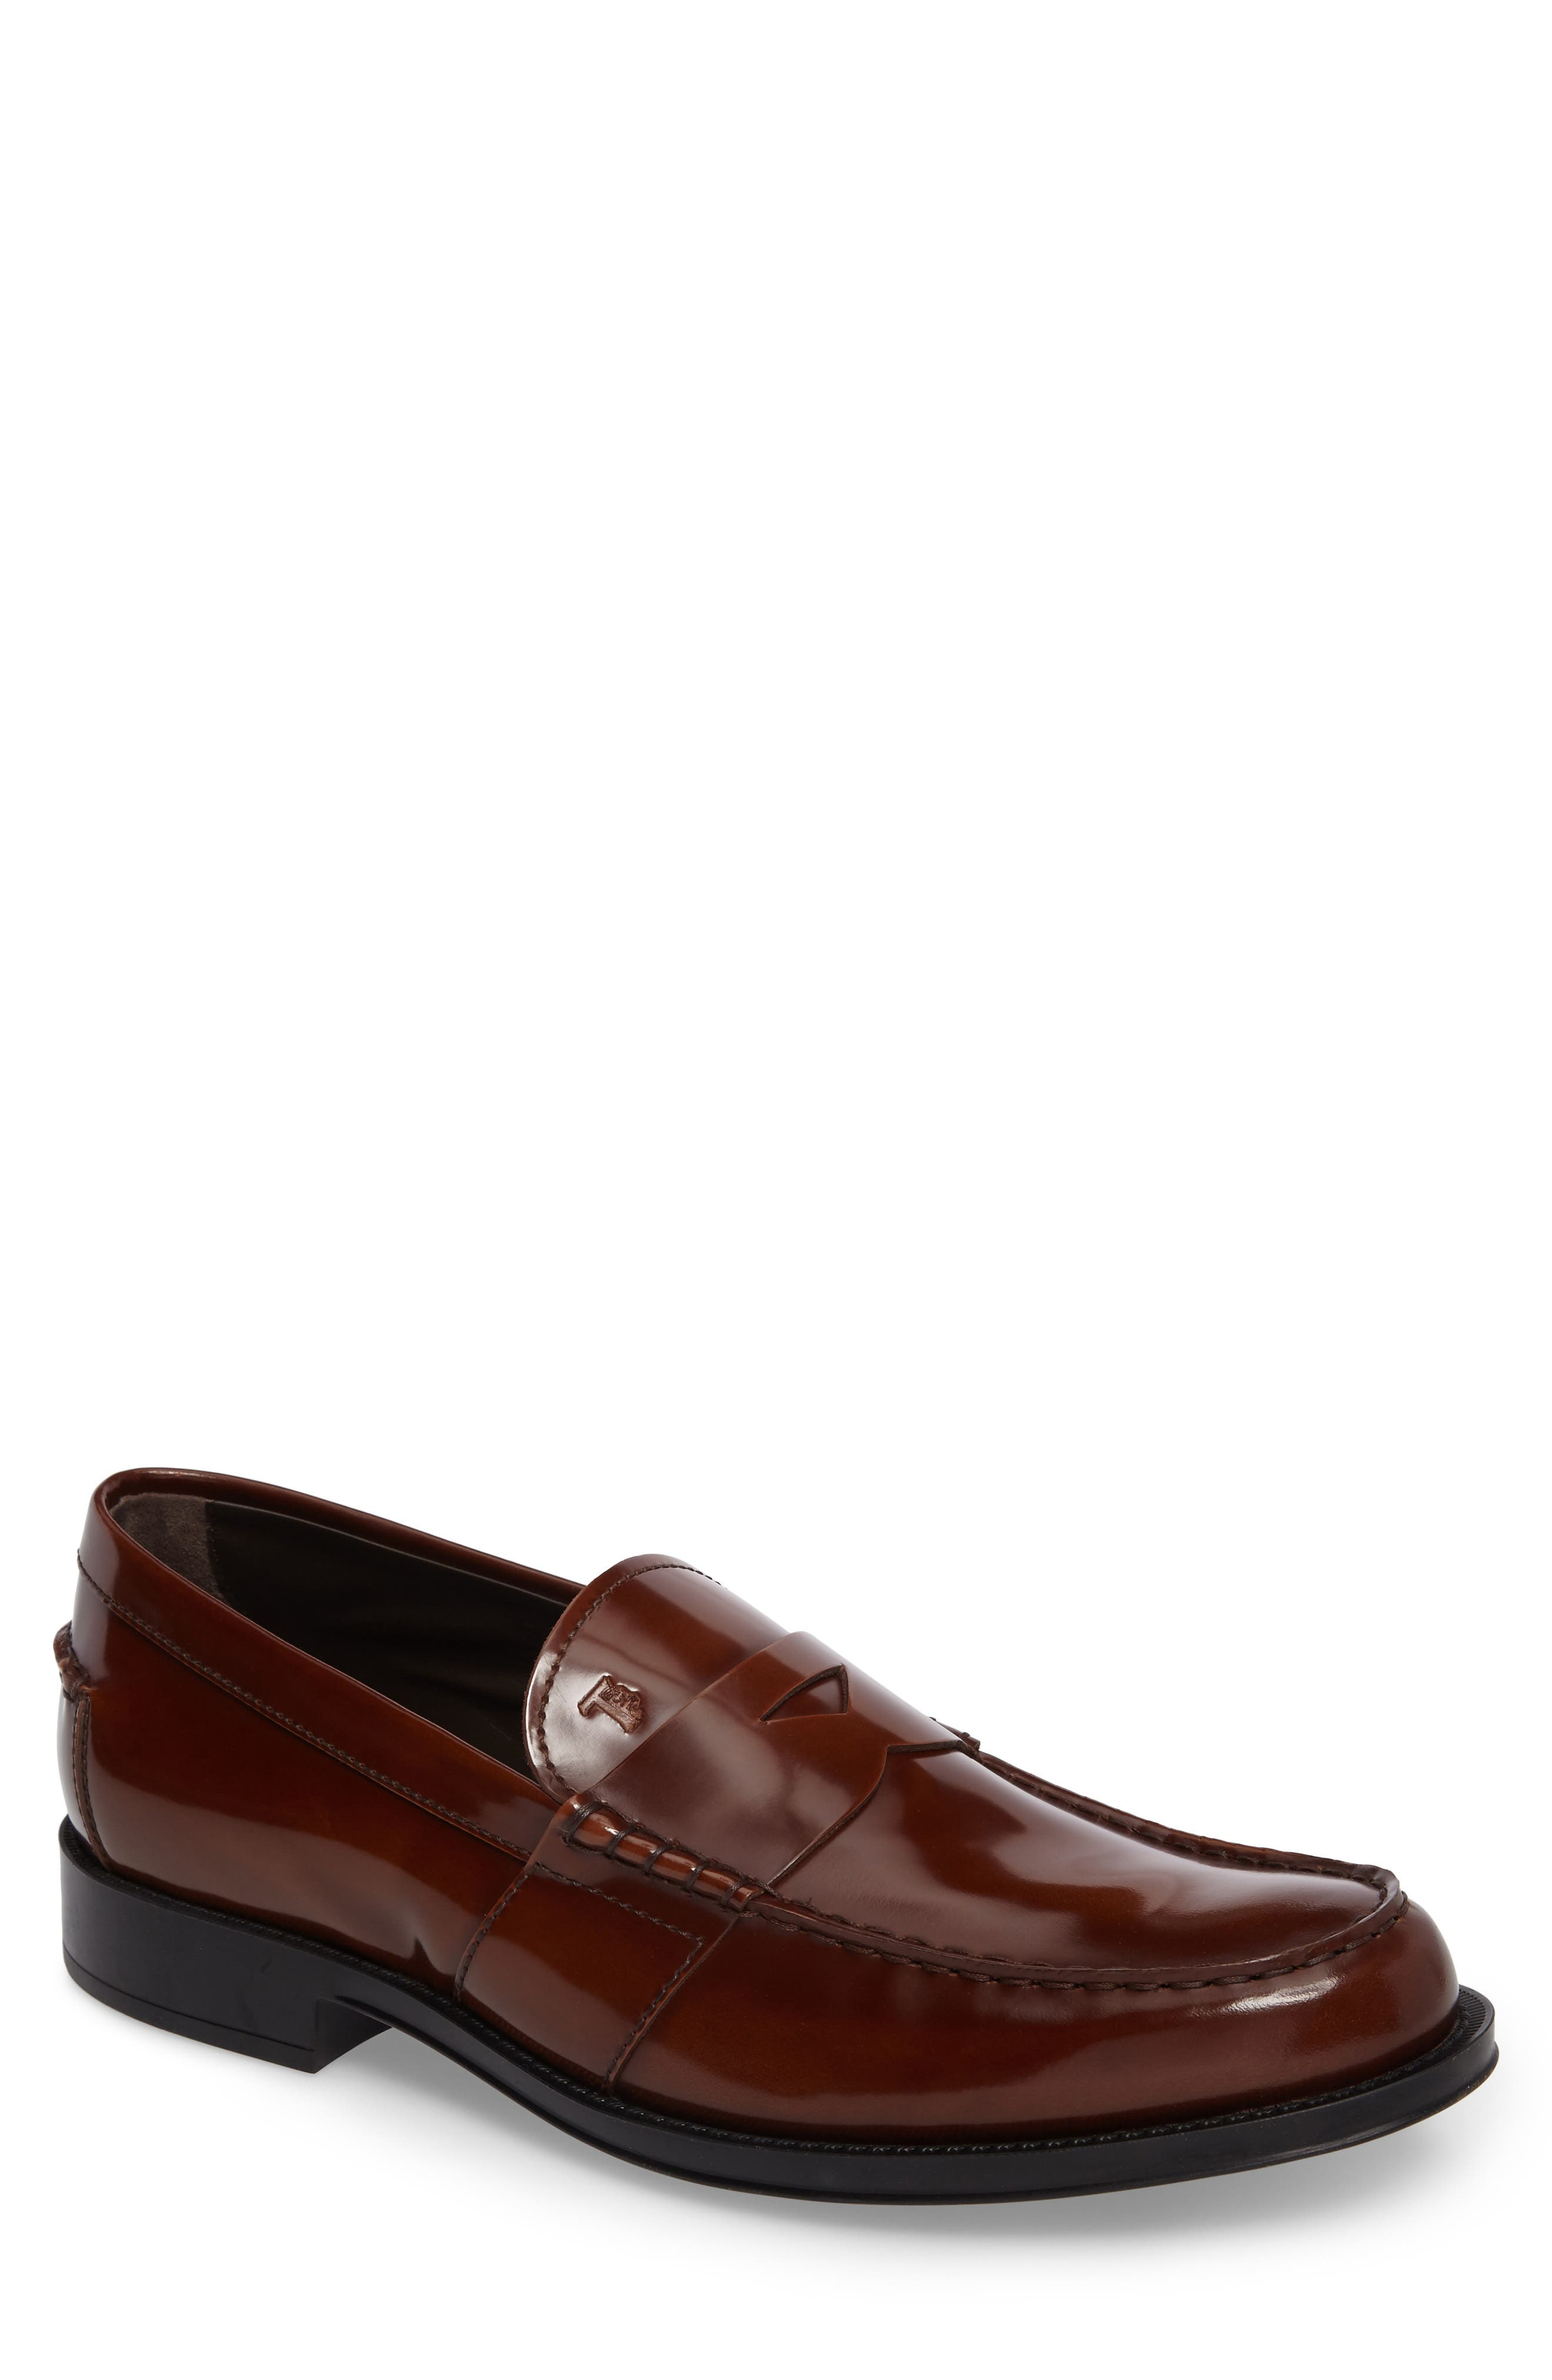 TODS Penny Loafer